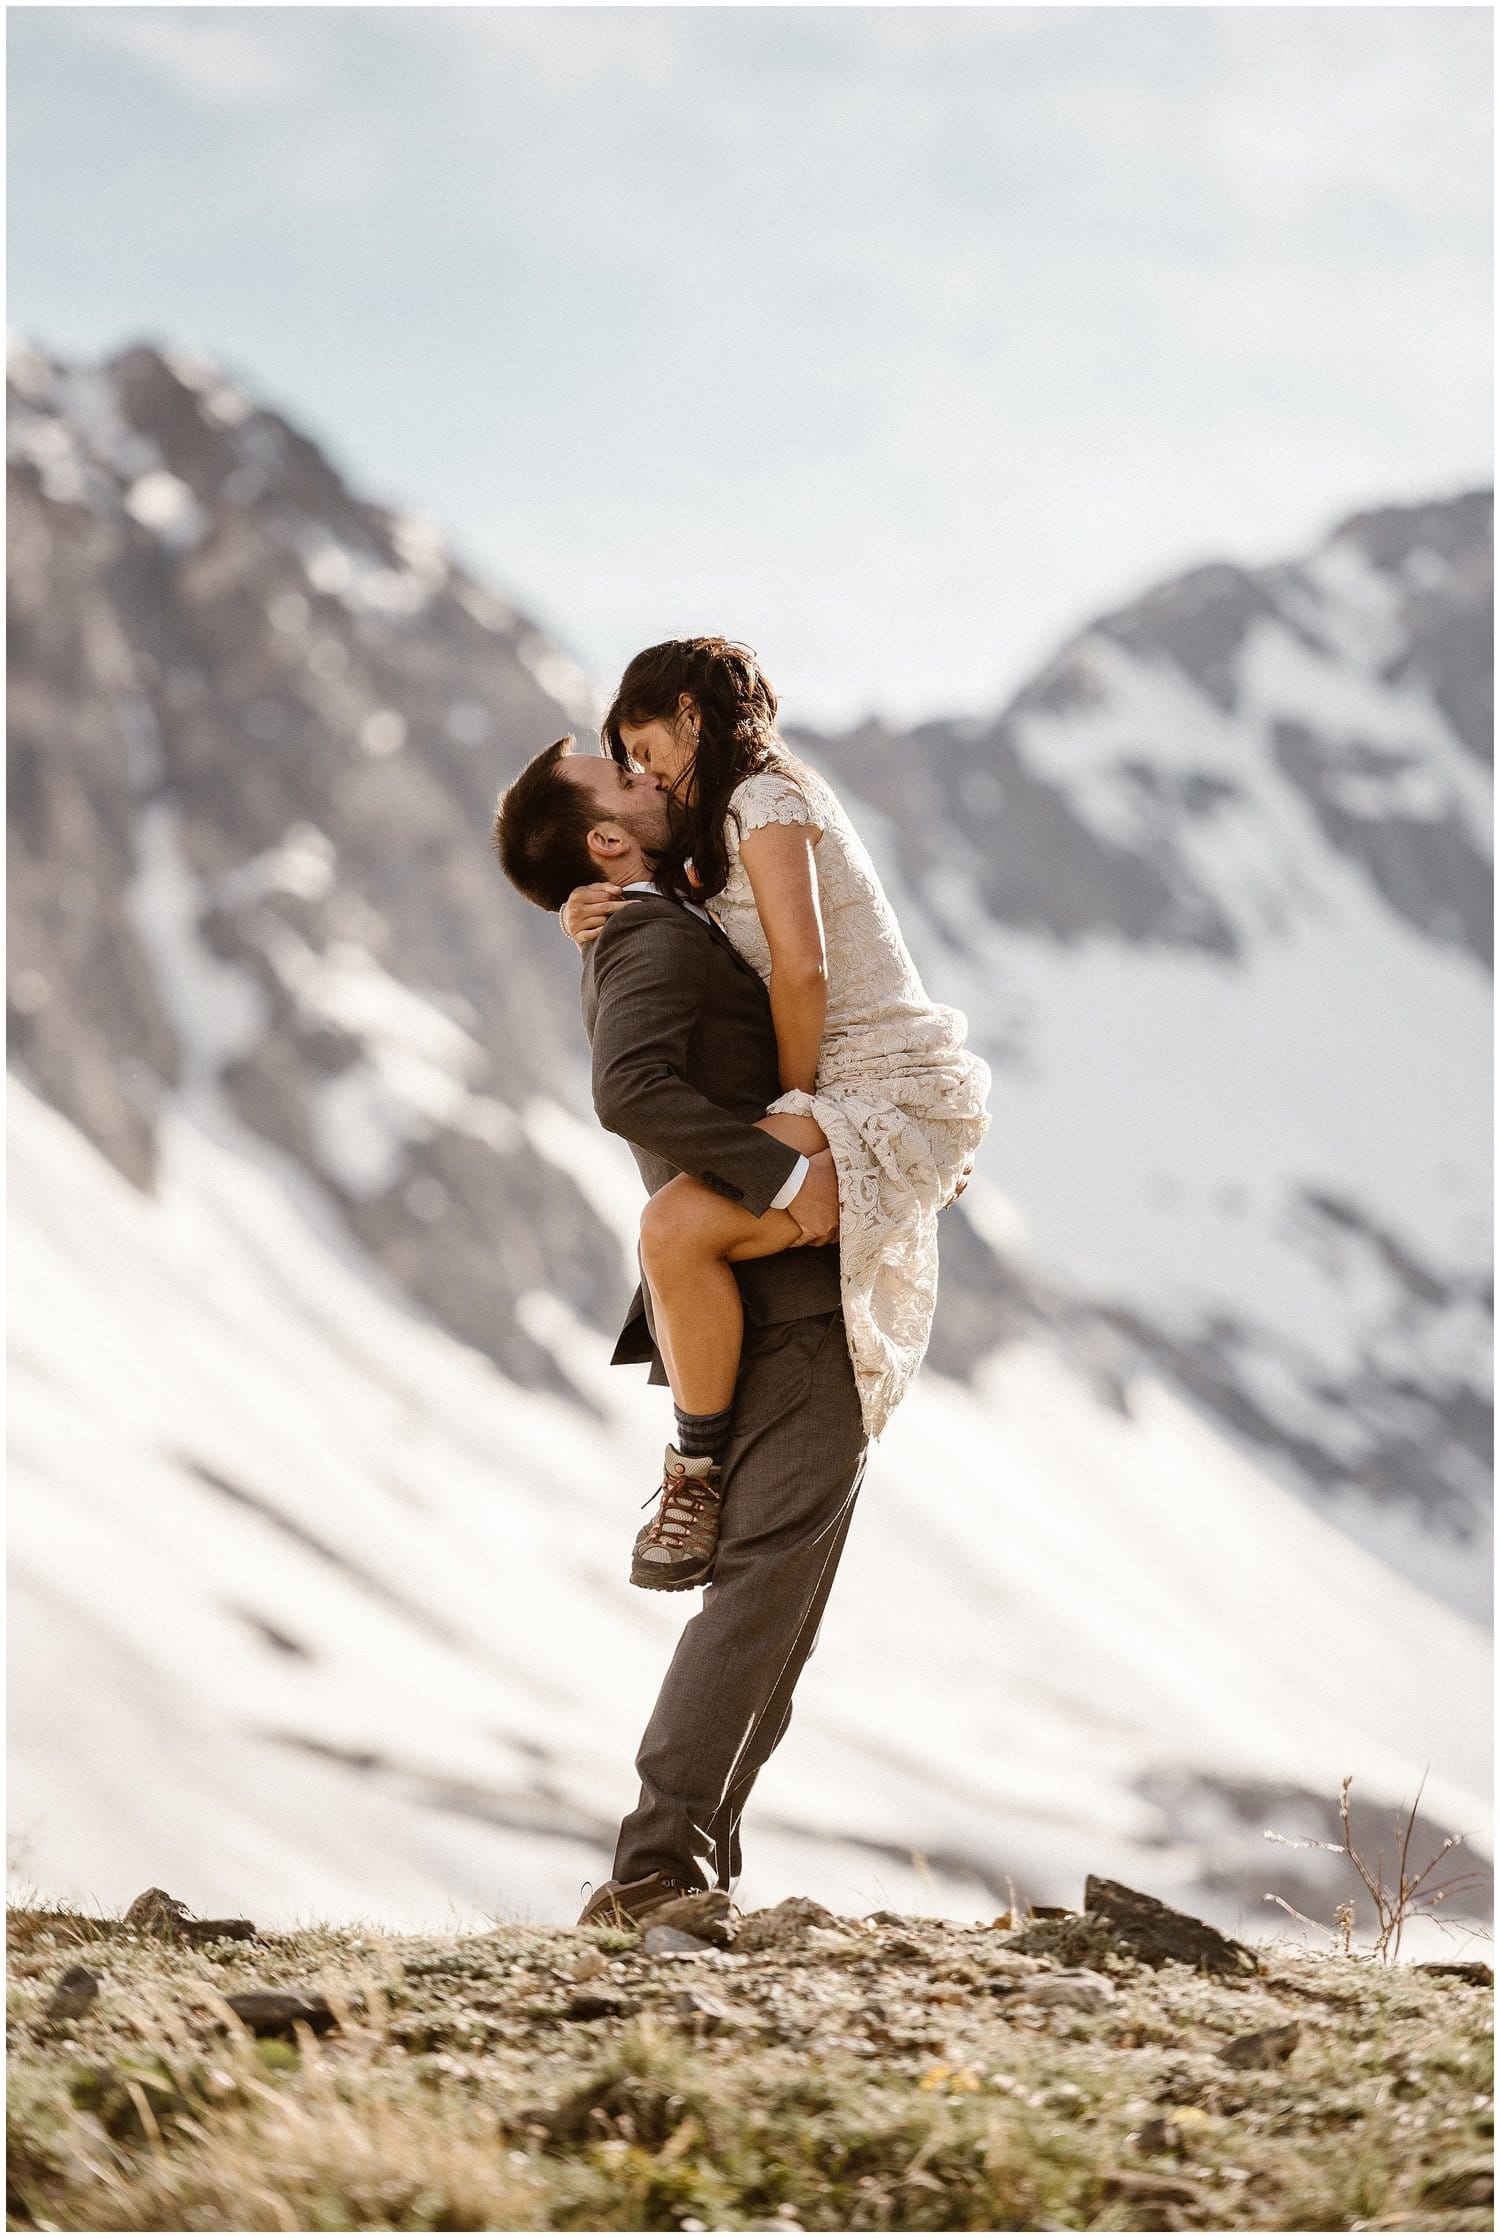 Groom picks up bride as they kiss in the mountains on their wedding day.